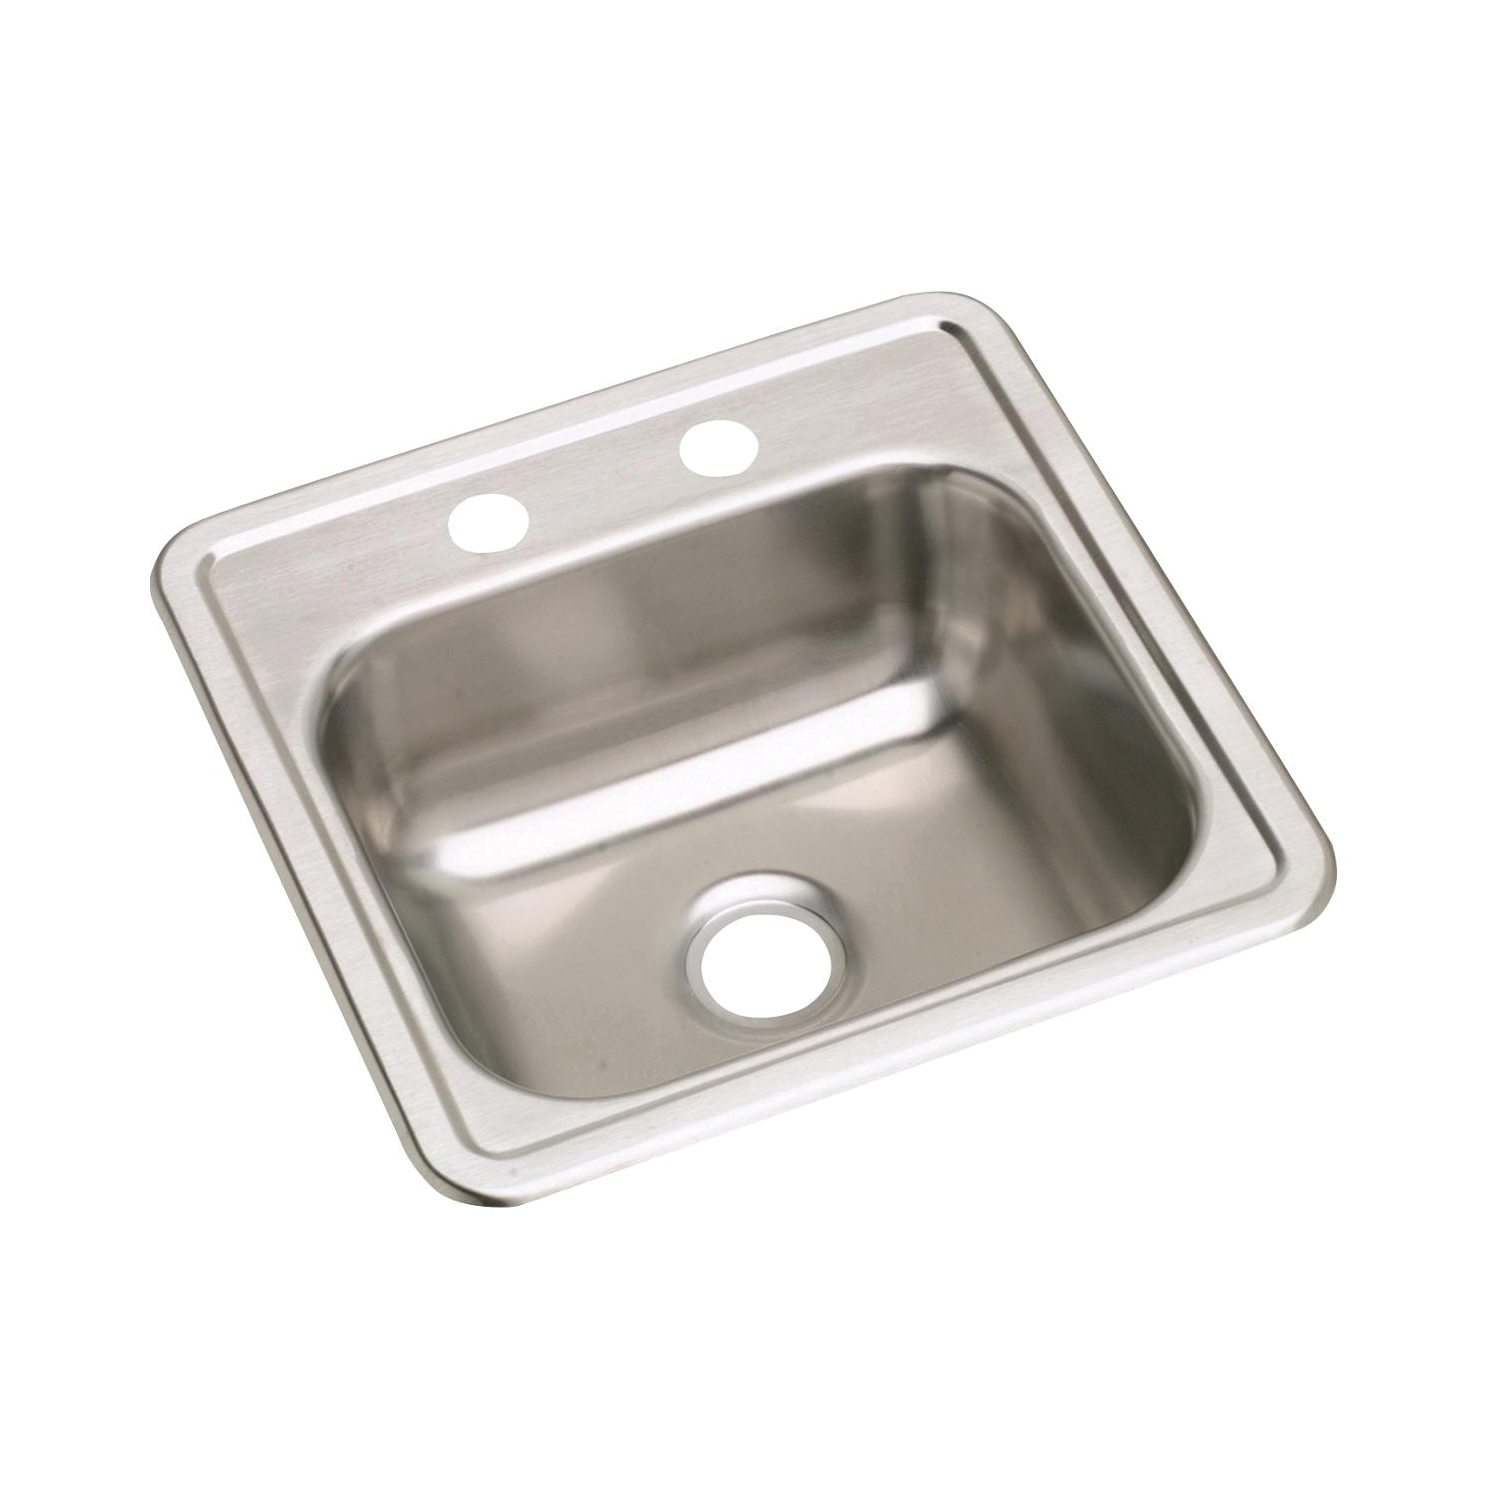 Elkay® D115152 Bar Sink, Satin, Squared Shape, 12 in L x 10 in W x 5 in D Bowl, 2 Faucet Holes, 15 in L x 15 in W x 5-3/16 in D, Top Mount, Stainless Steel